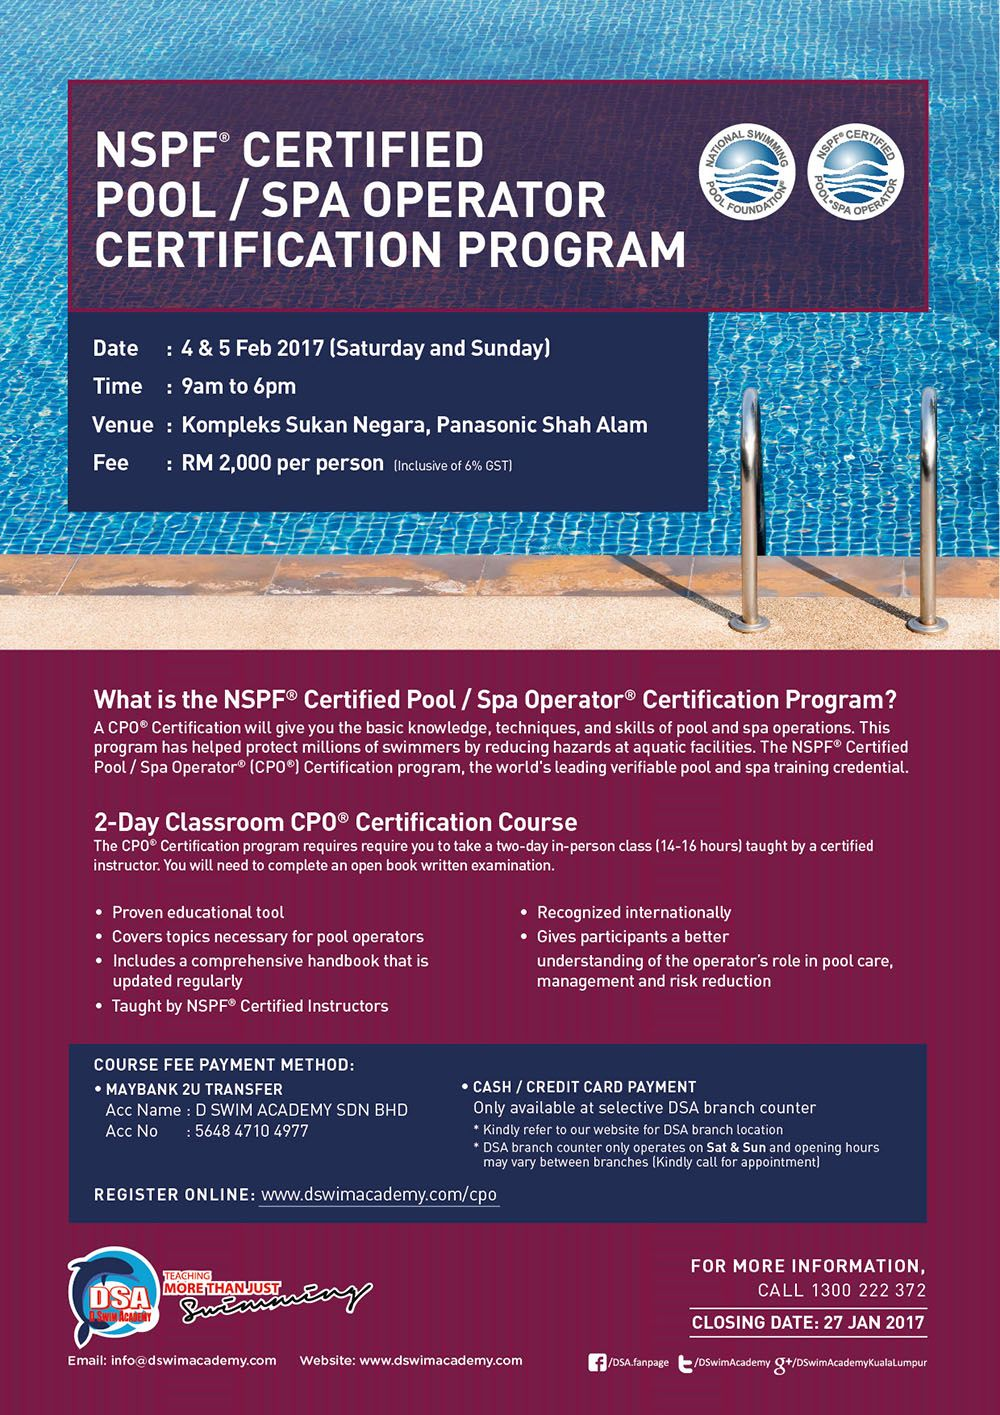 Nspf certified poolspa operator certification program teaching nspf certified poolspa operator certification program 1betcityfo Images